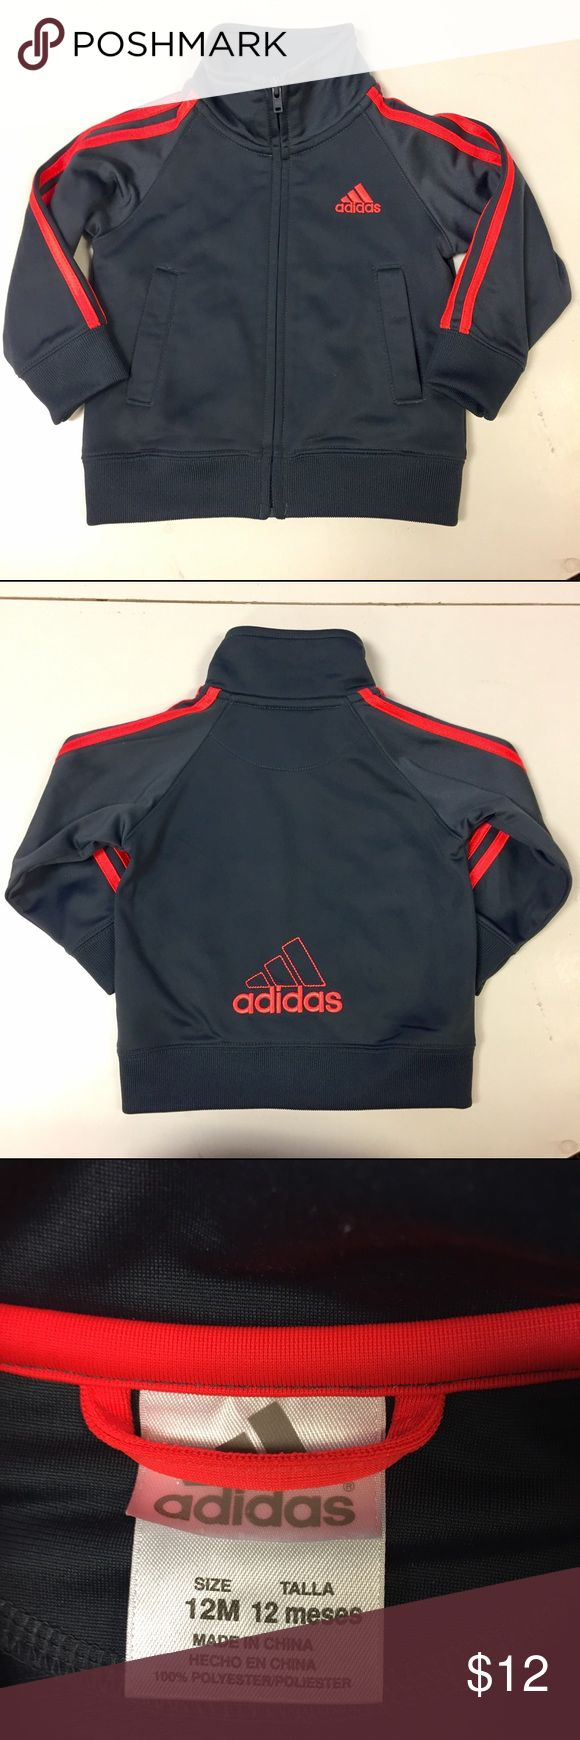 Baby ADIDAS Track Jacket SZ 12 Months This baby / infant Adidas track athletic performance jacket is in excellent condition. Might as well be brand new. Size 12 months. Charcoal colored full zip coat/jacket with orange stripes. adidas Shirts & Tops Sweatshirts & Hoodies